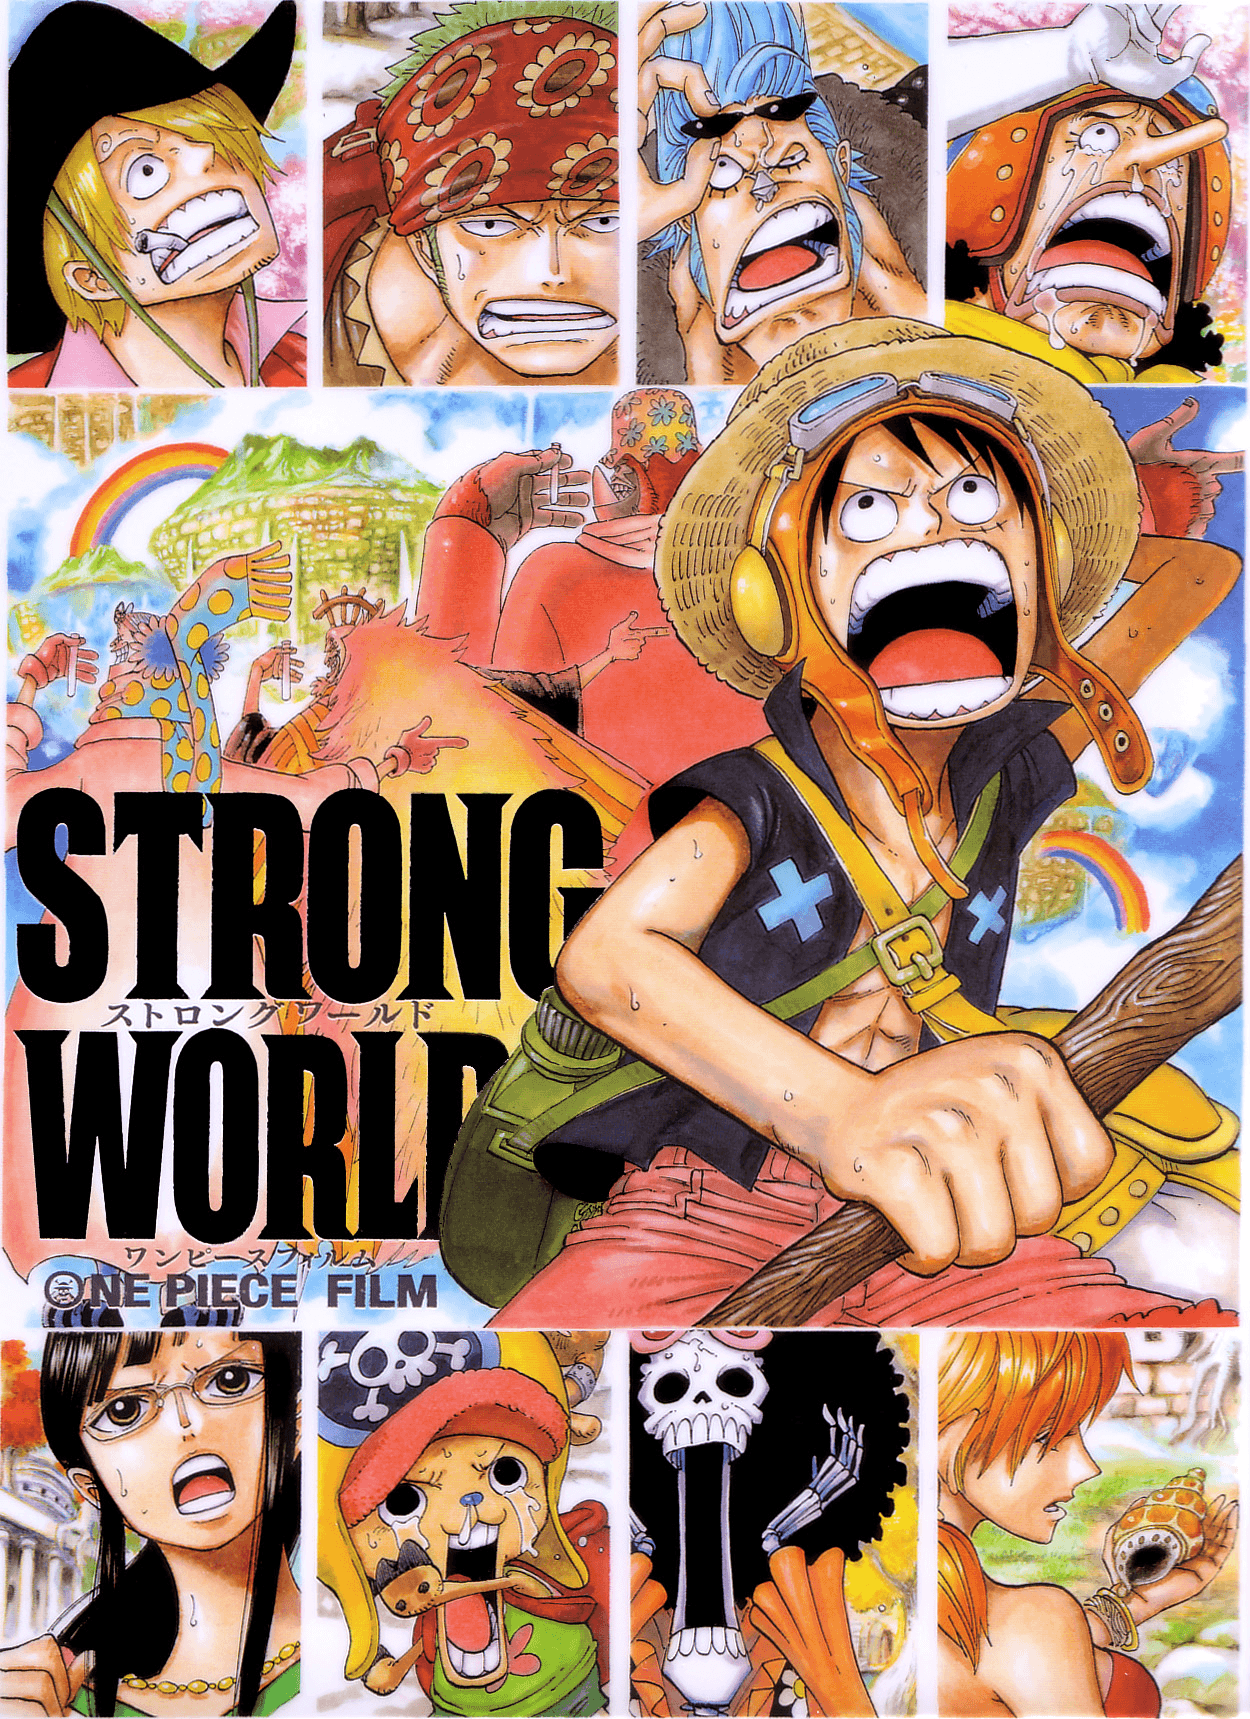 Shonen One Piece - Strong World